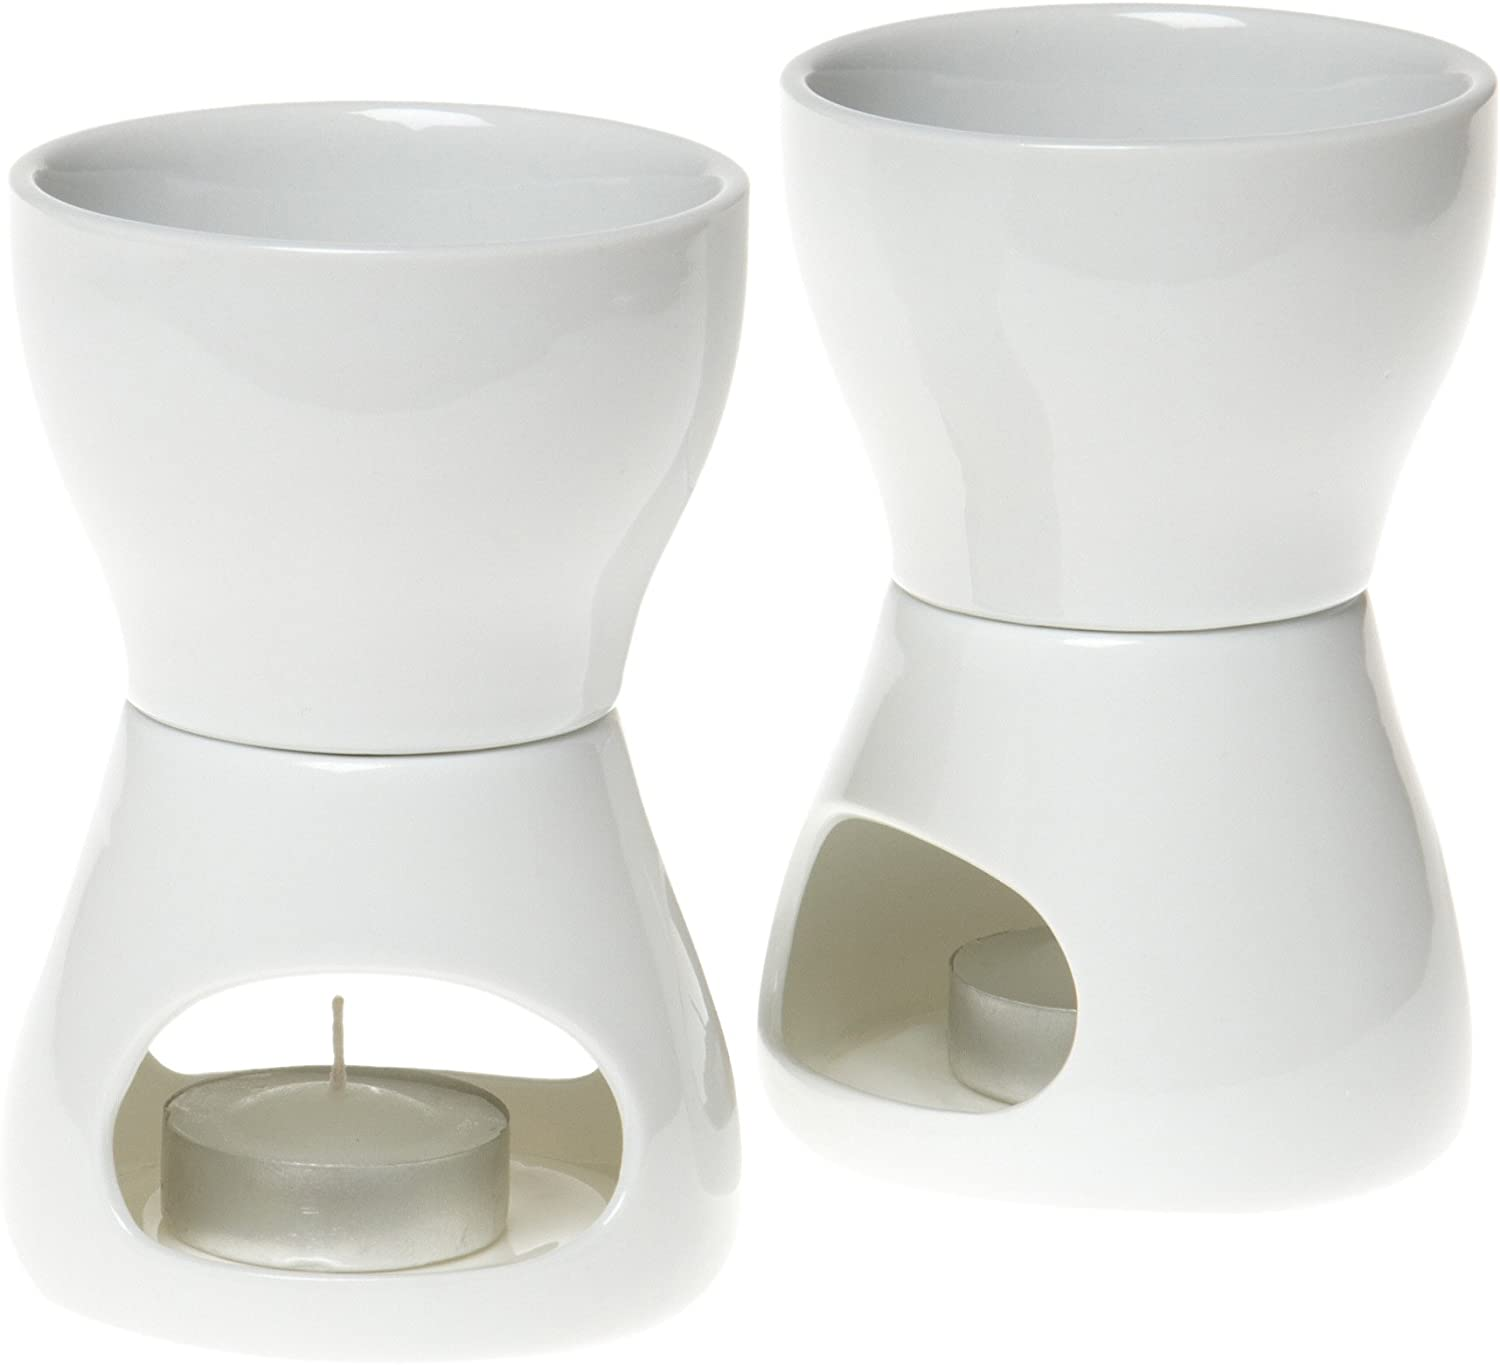 Amazon Com Norpro 213 Porcelain Butter Warmer 2pc Set 4 X 7 X 4 Inches As Shown Dip Warmer Kitchen Dining